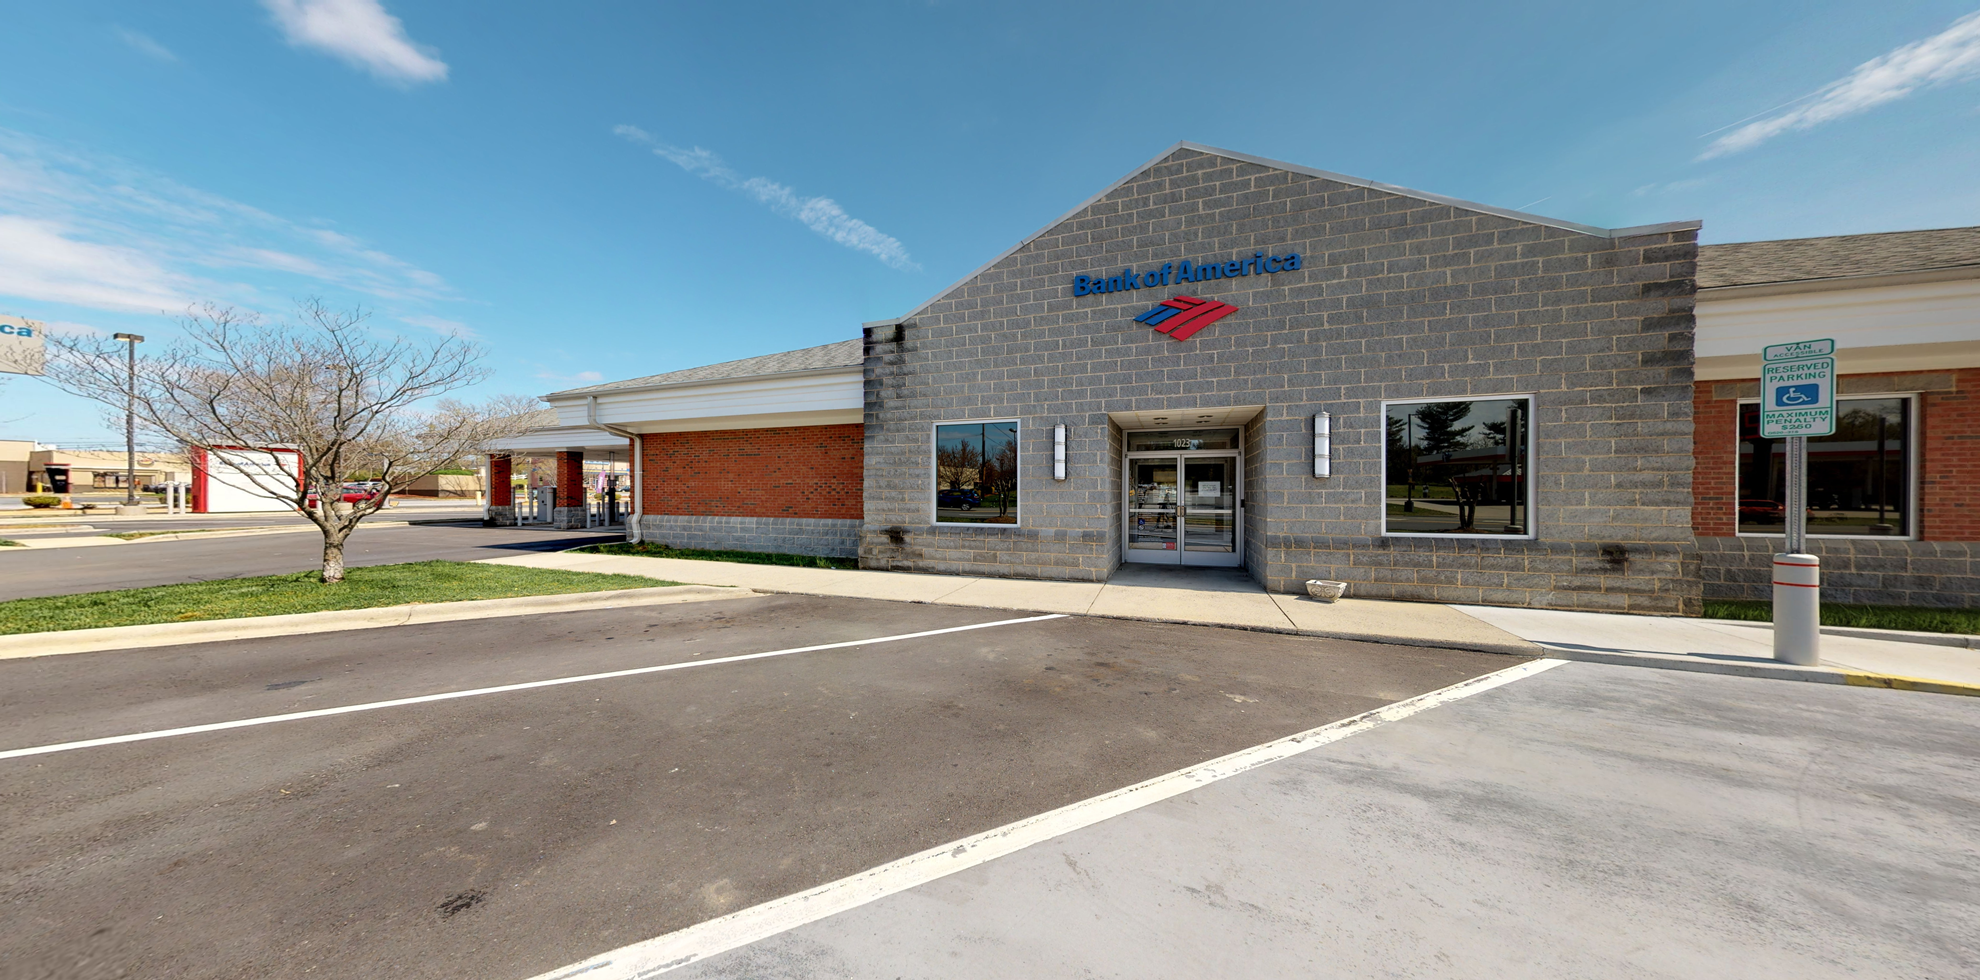 Bank of America financial center with drive-thru ATM | 1023 Randolph St, Thomasville, NC 27360